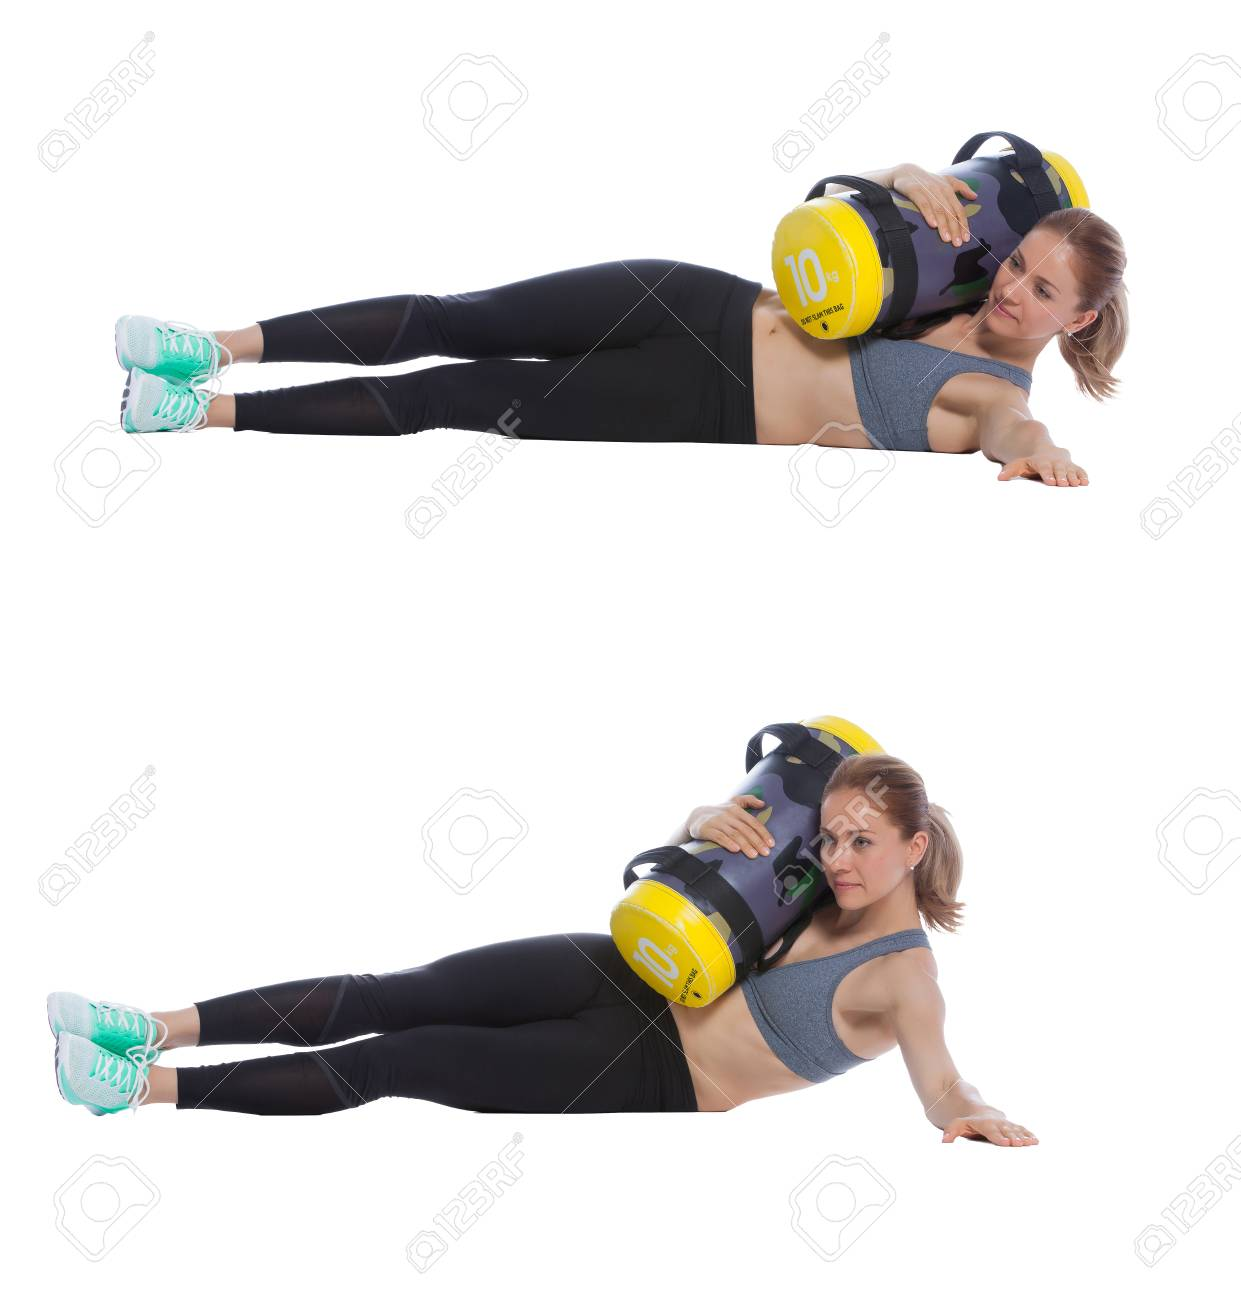 21cccfc0264d Core bag exercise executed with a professional trainer. Stock Photo -  74448905